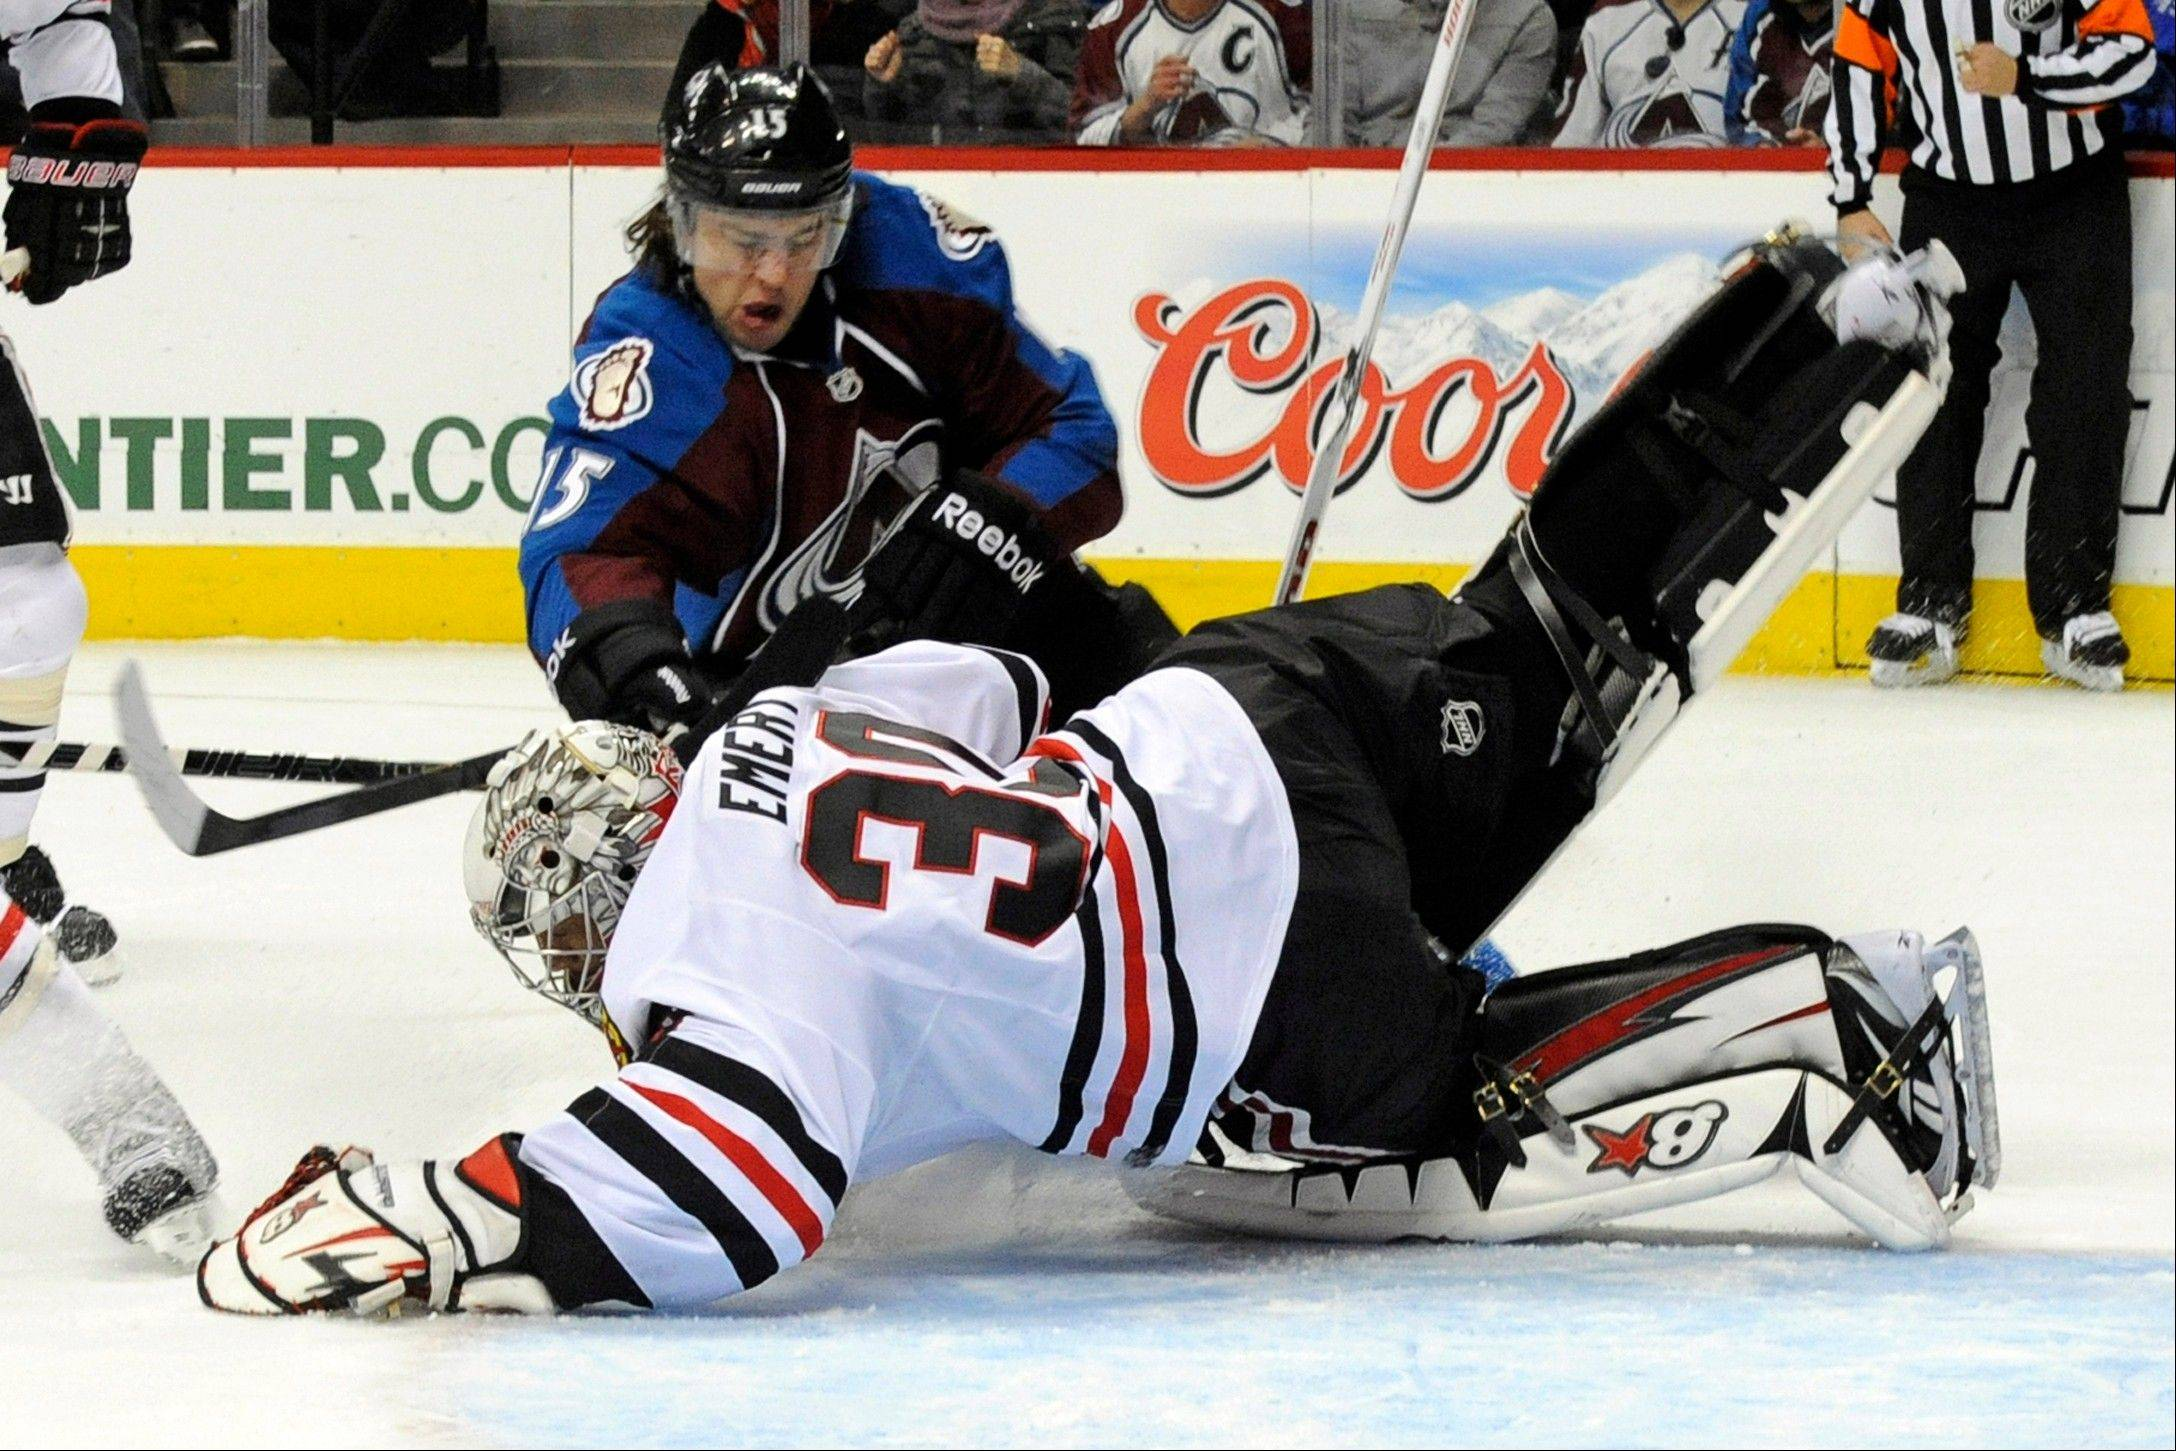 Chicago Blackhawks goalie Ray Emery (30) dives to make a save against Colorado Avalanche right wing P.A. Parenteau (15) during the first period.